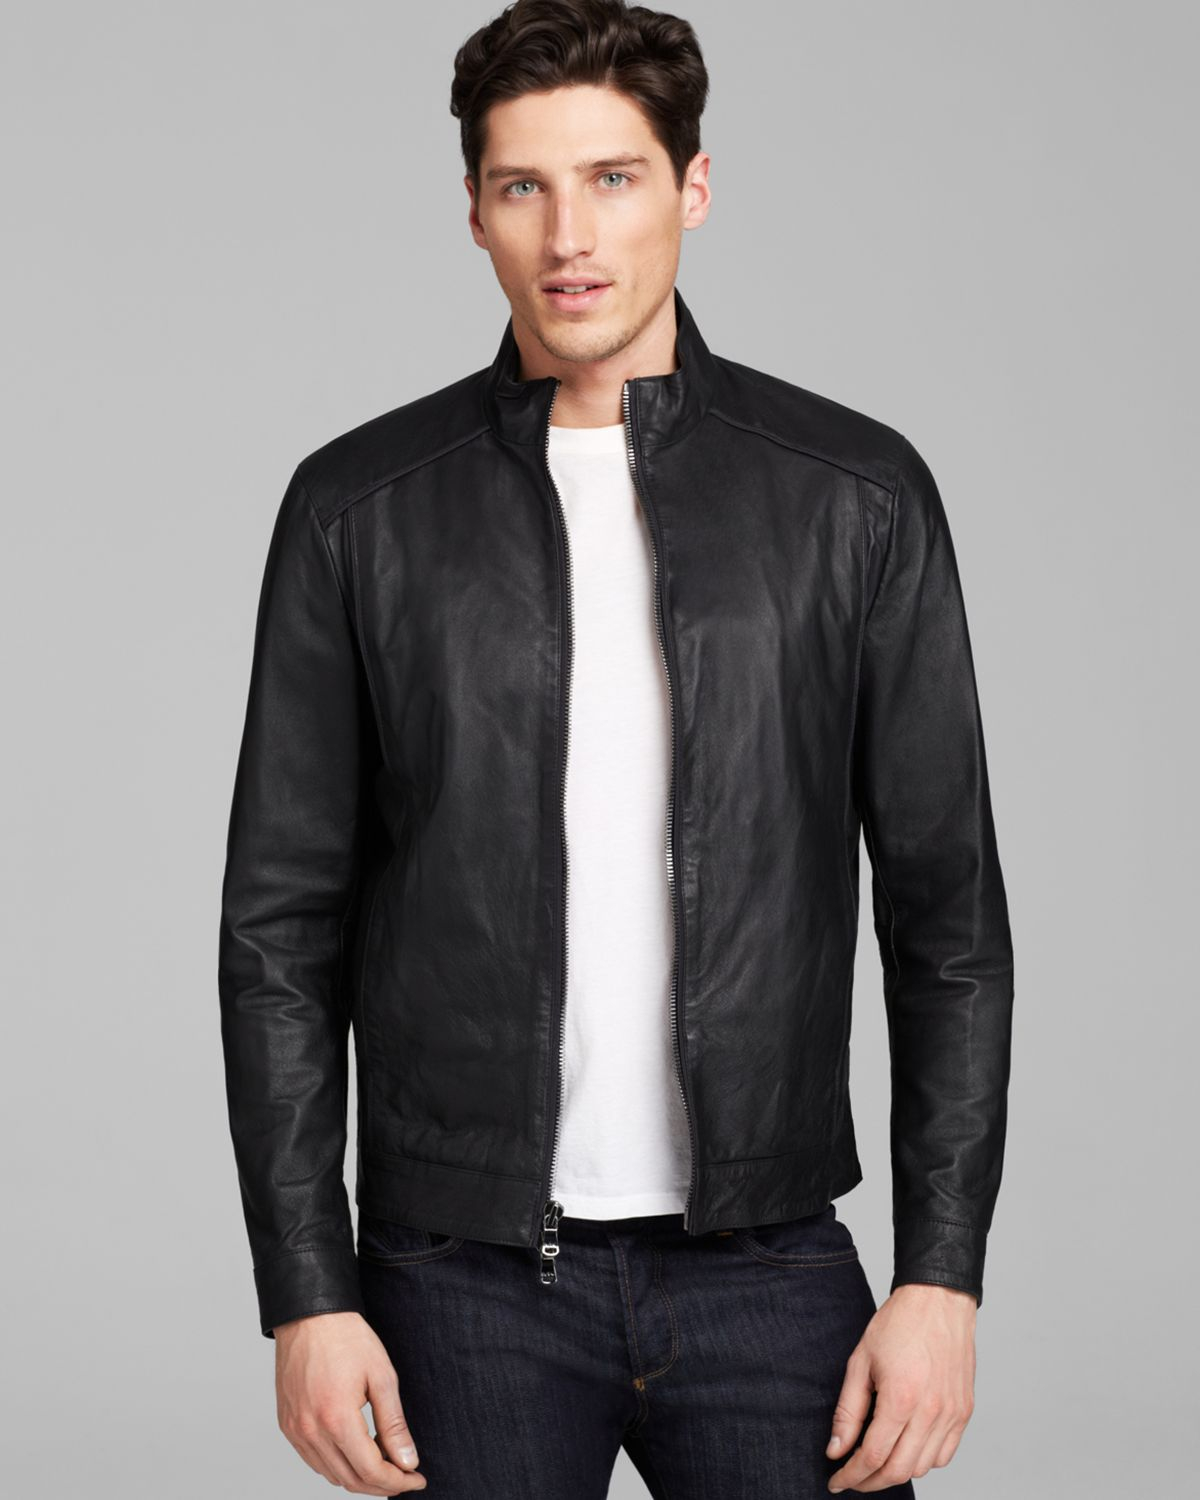 Michael kors Piped Leather Jacket in Black for Men | Lyst